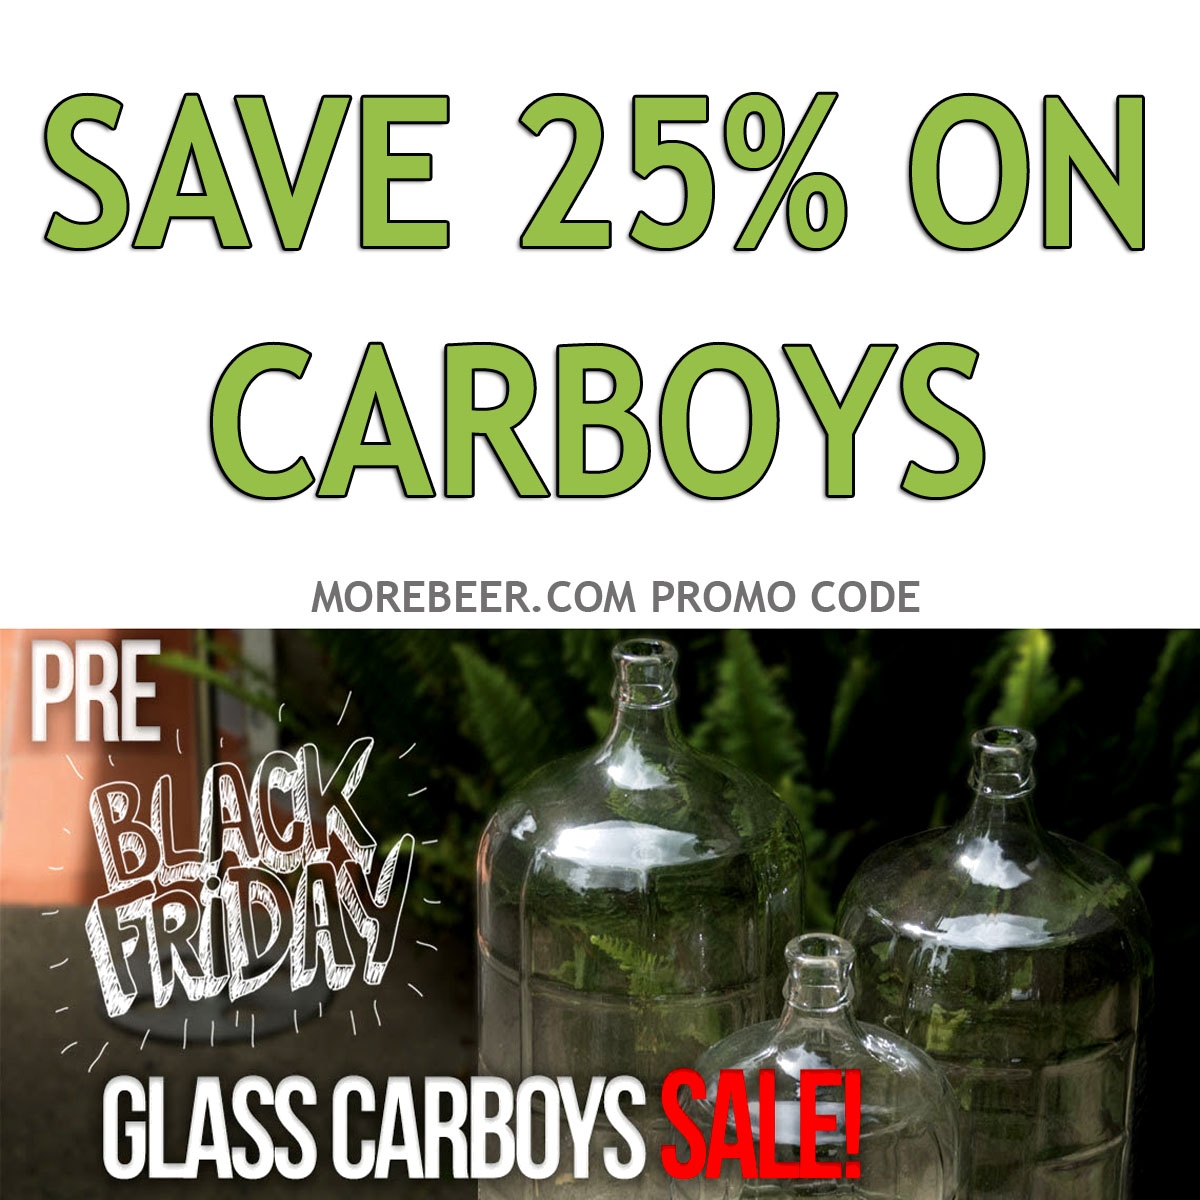 Coupon Code For Save 25% On Carboys At MoreBeer.com Plus Free Shipping On Orders Over $59 Coupon Code